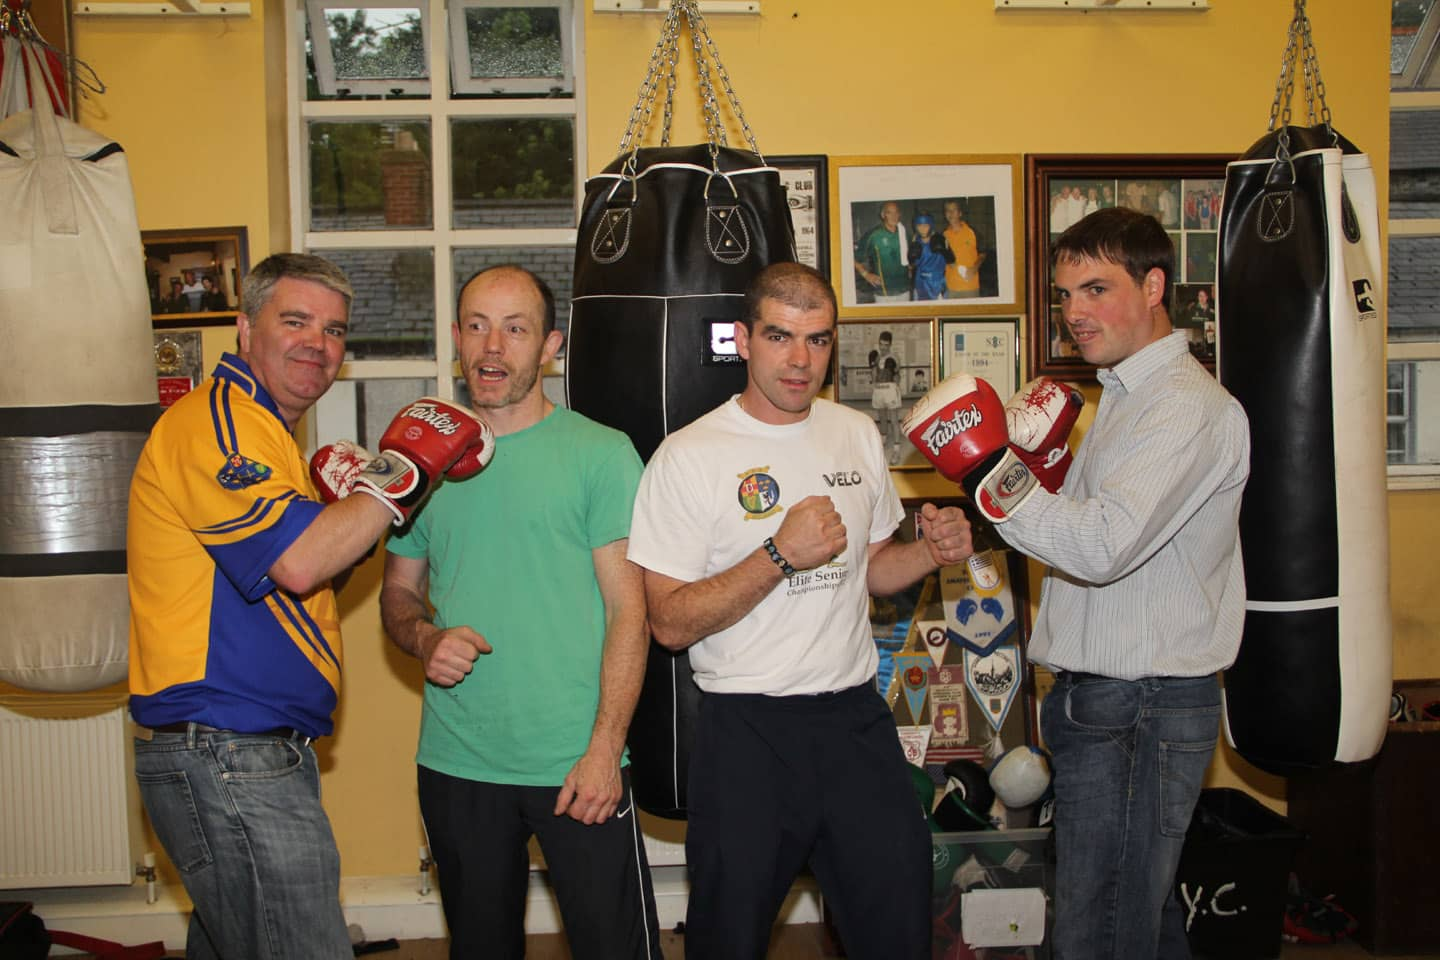 From l-r: Cathal Boylan, Chris Fullerton, Martin Renaghan and Darren McNally